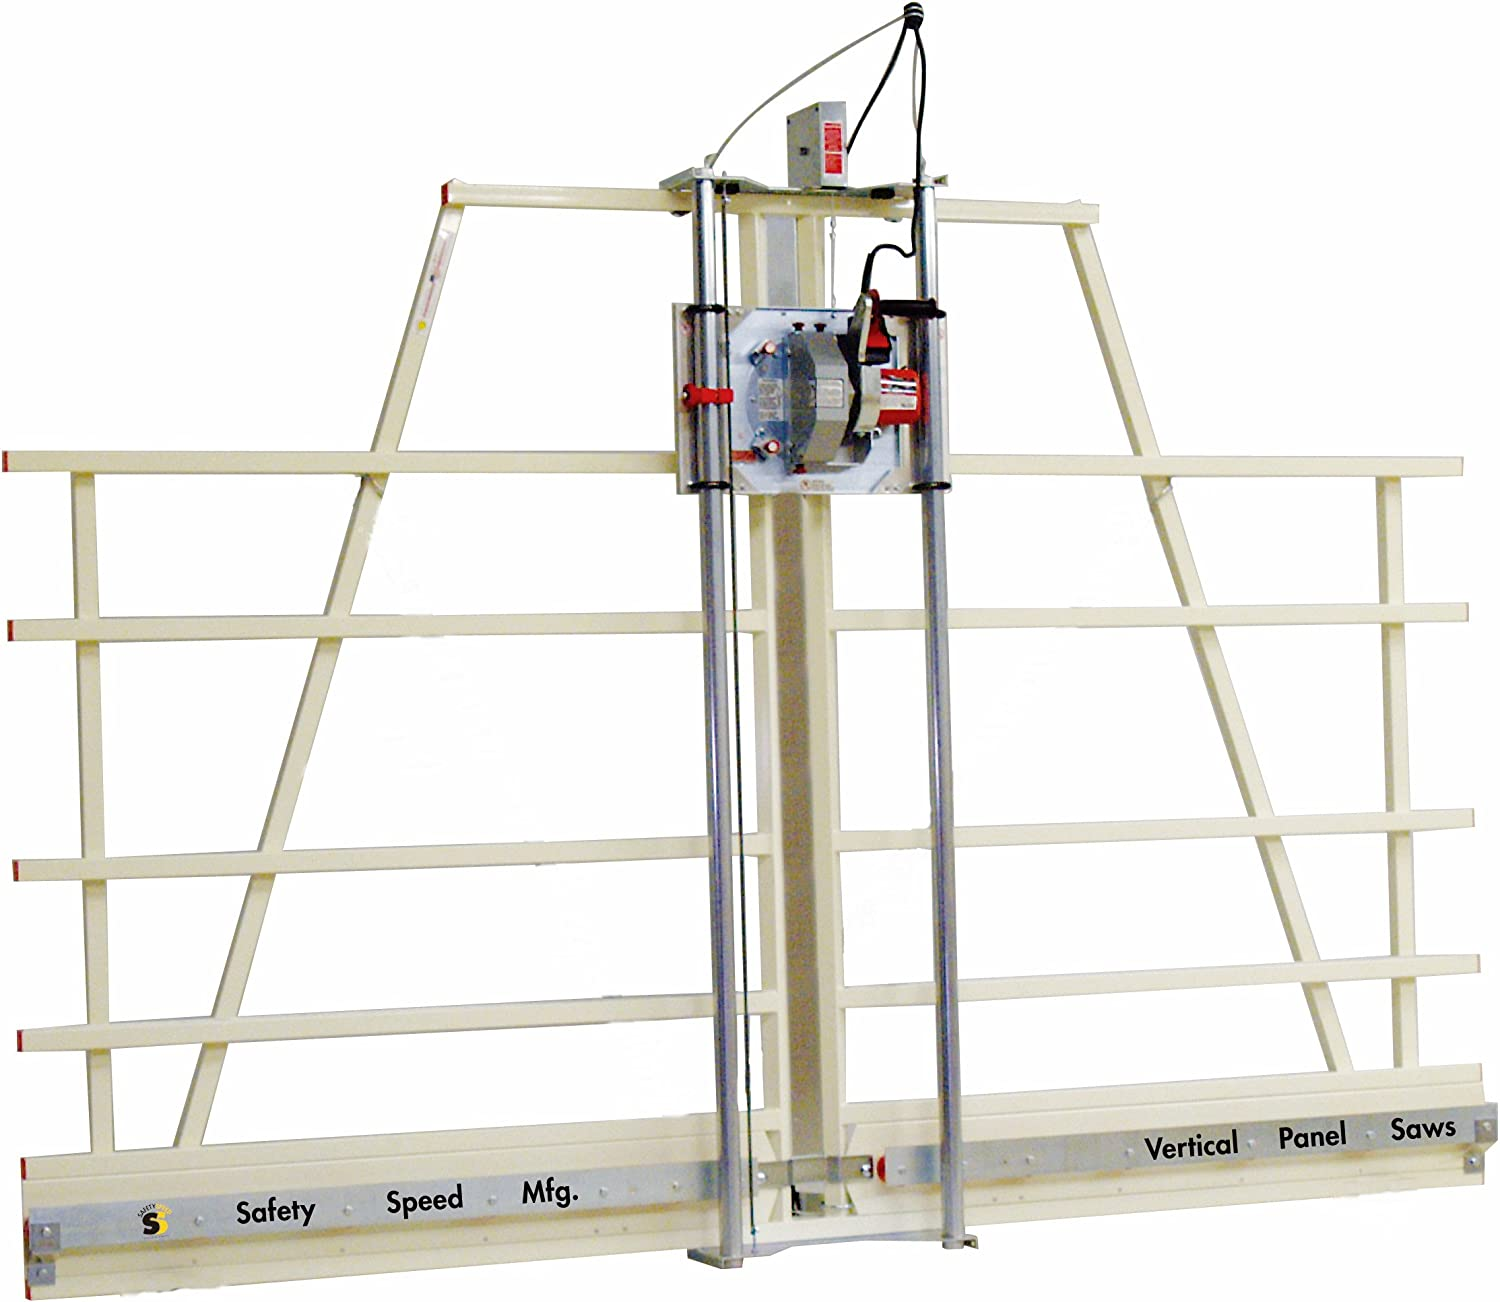 4. Safety Speed H5 Panel Saw